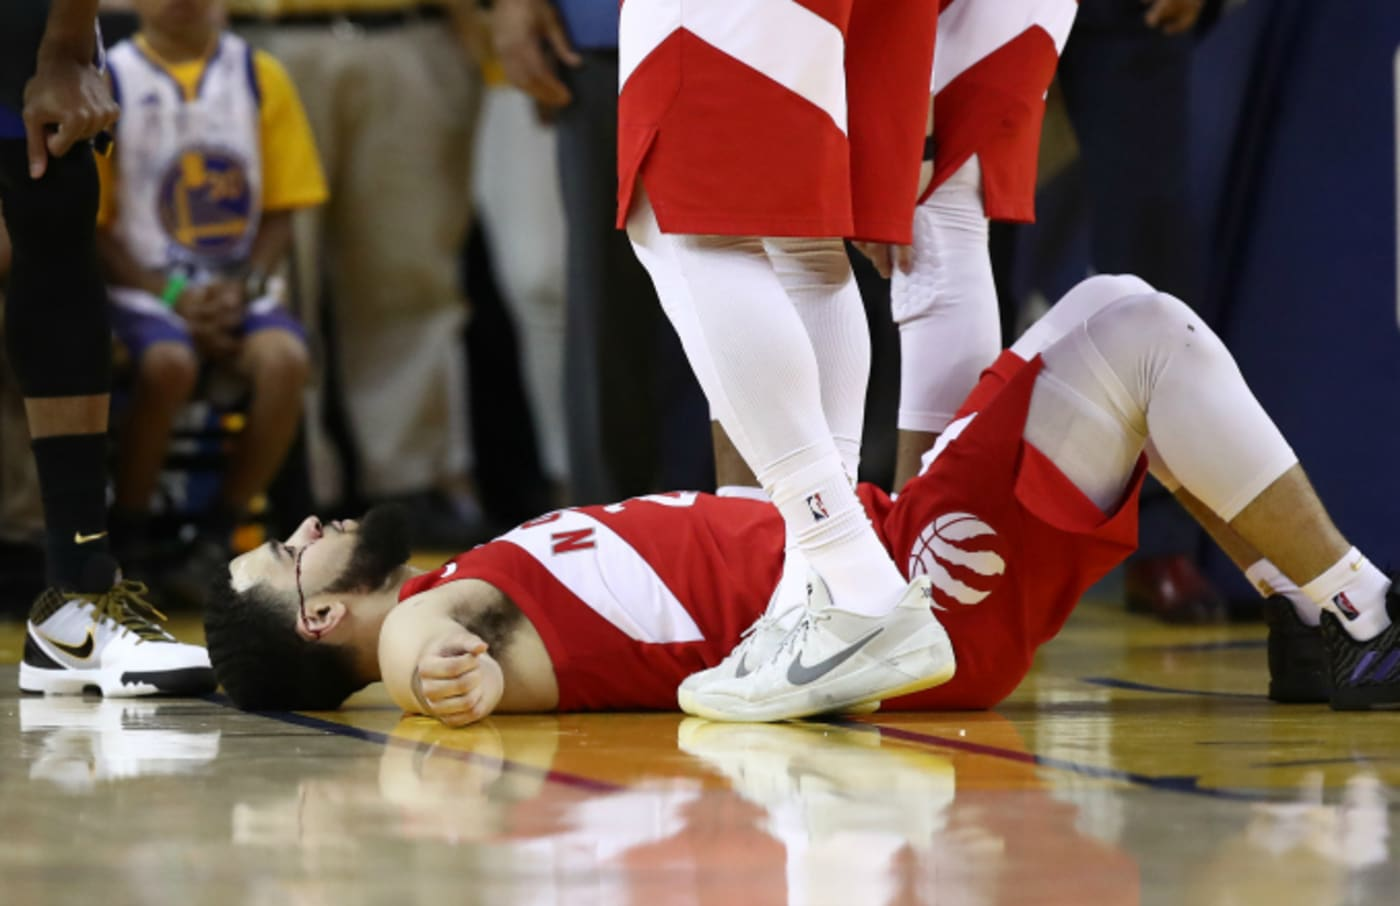 Fred VanVleet #23 of the Toronto Raptors reacts after taking an elbow to the forehead